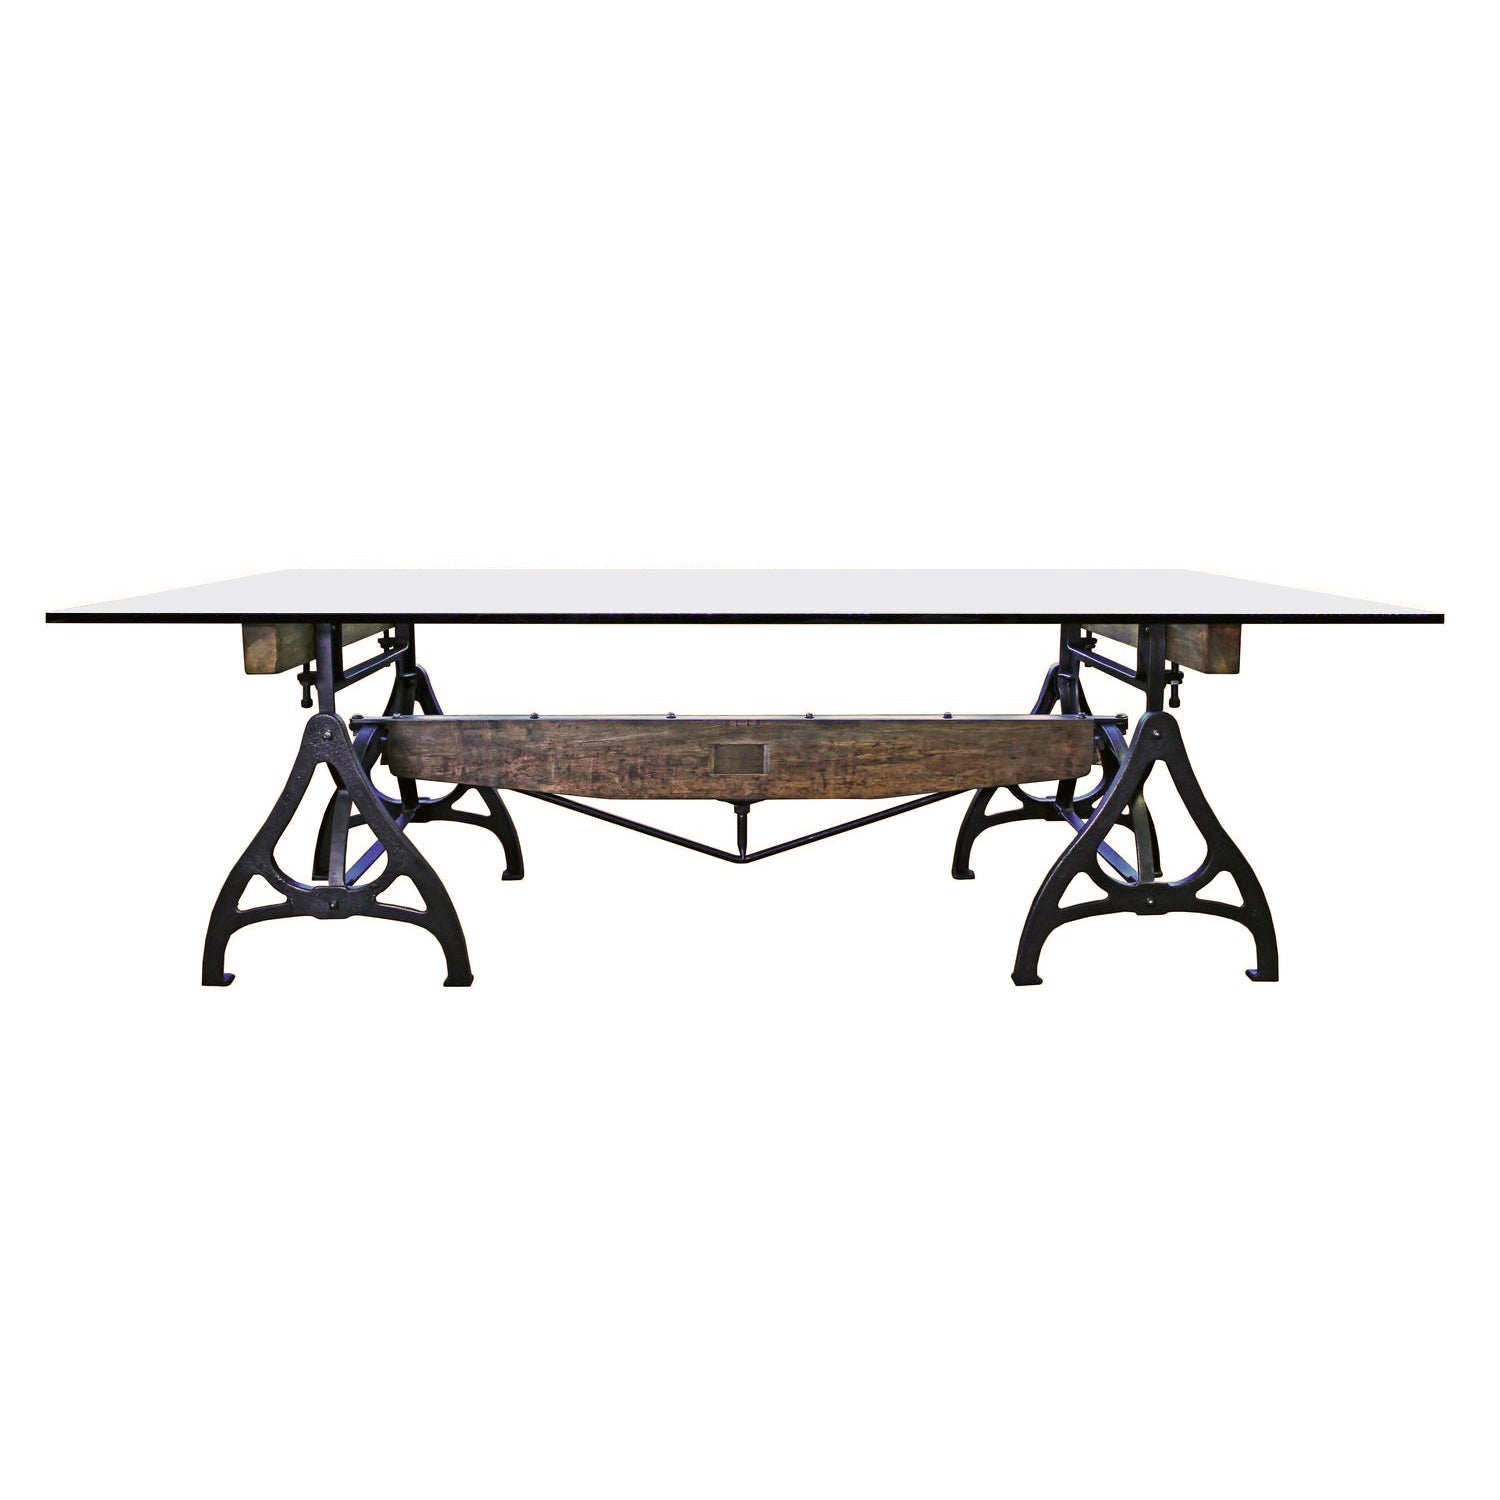 Swell Conference Dining Table Vintage Industrial Wood Steel Cast Iron Glass Onthecornerstone Fun Painted Chair Ideas Images Onthecornerstoneorg